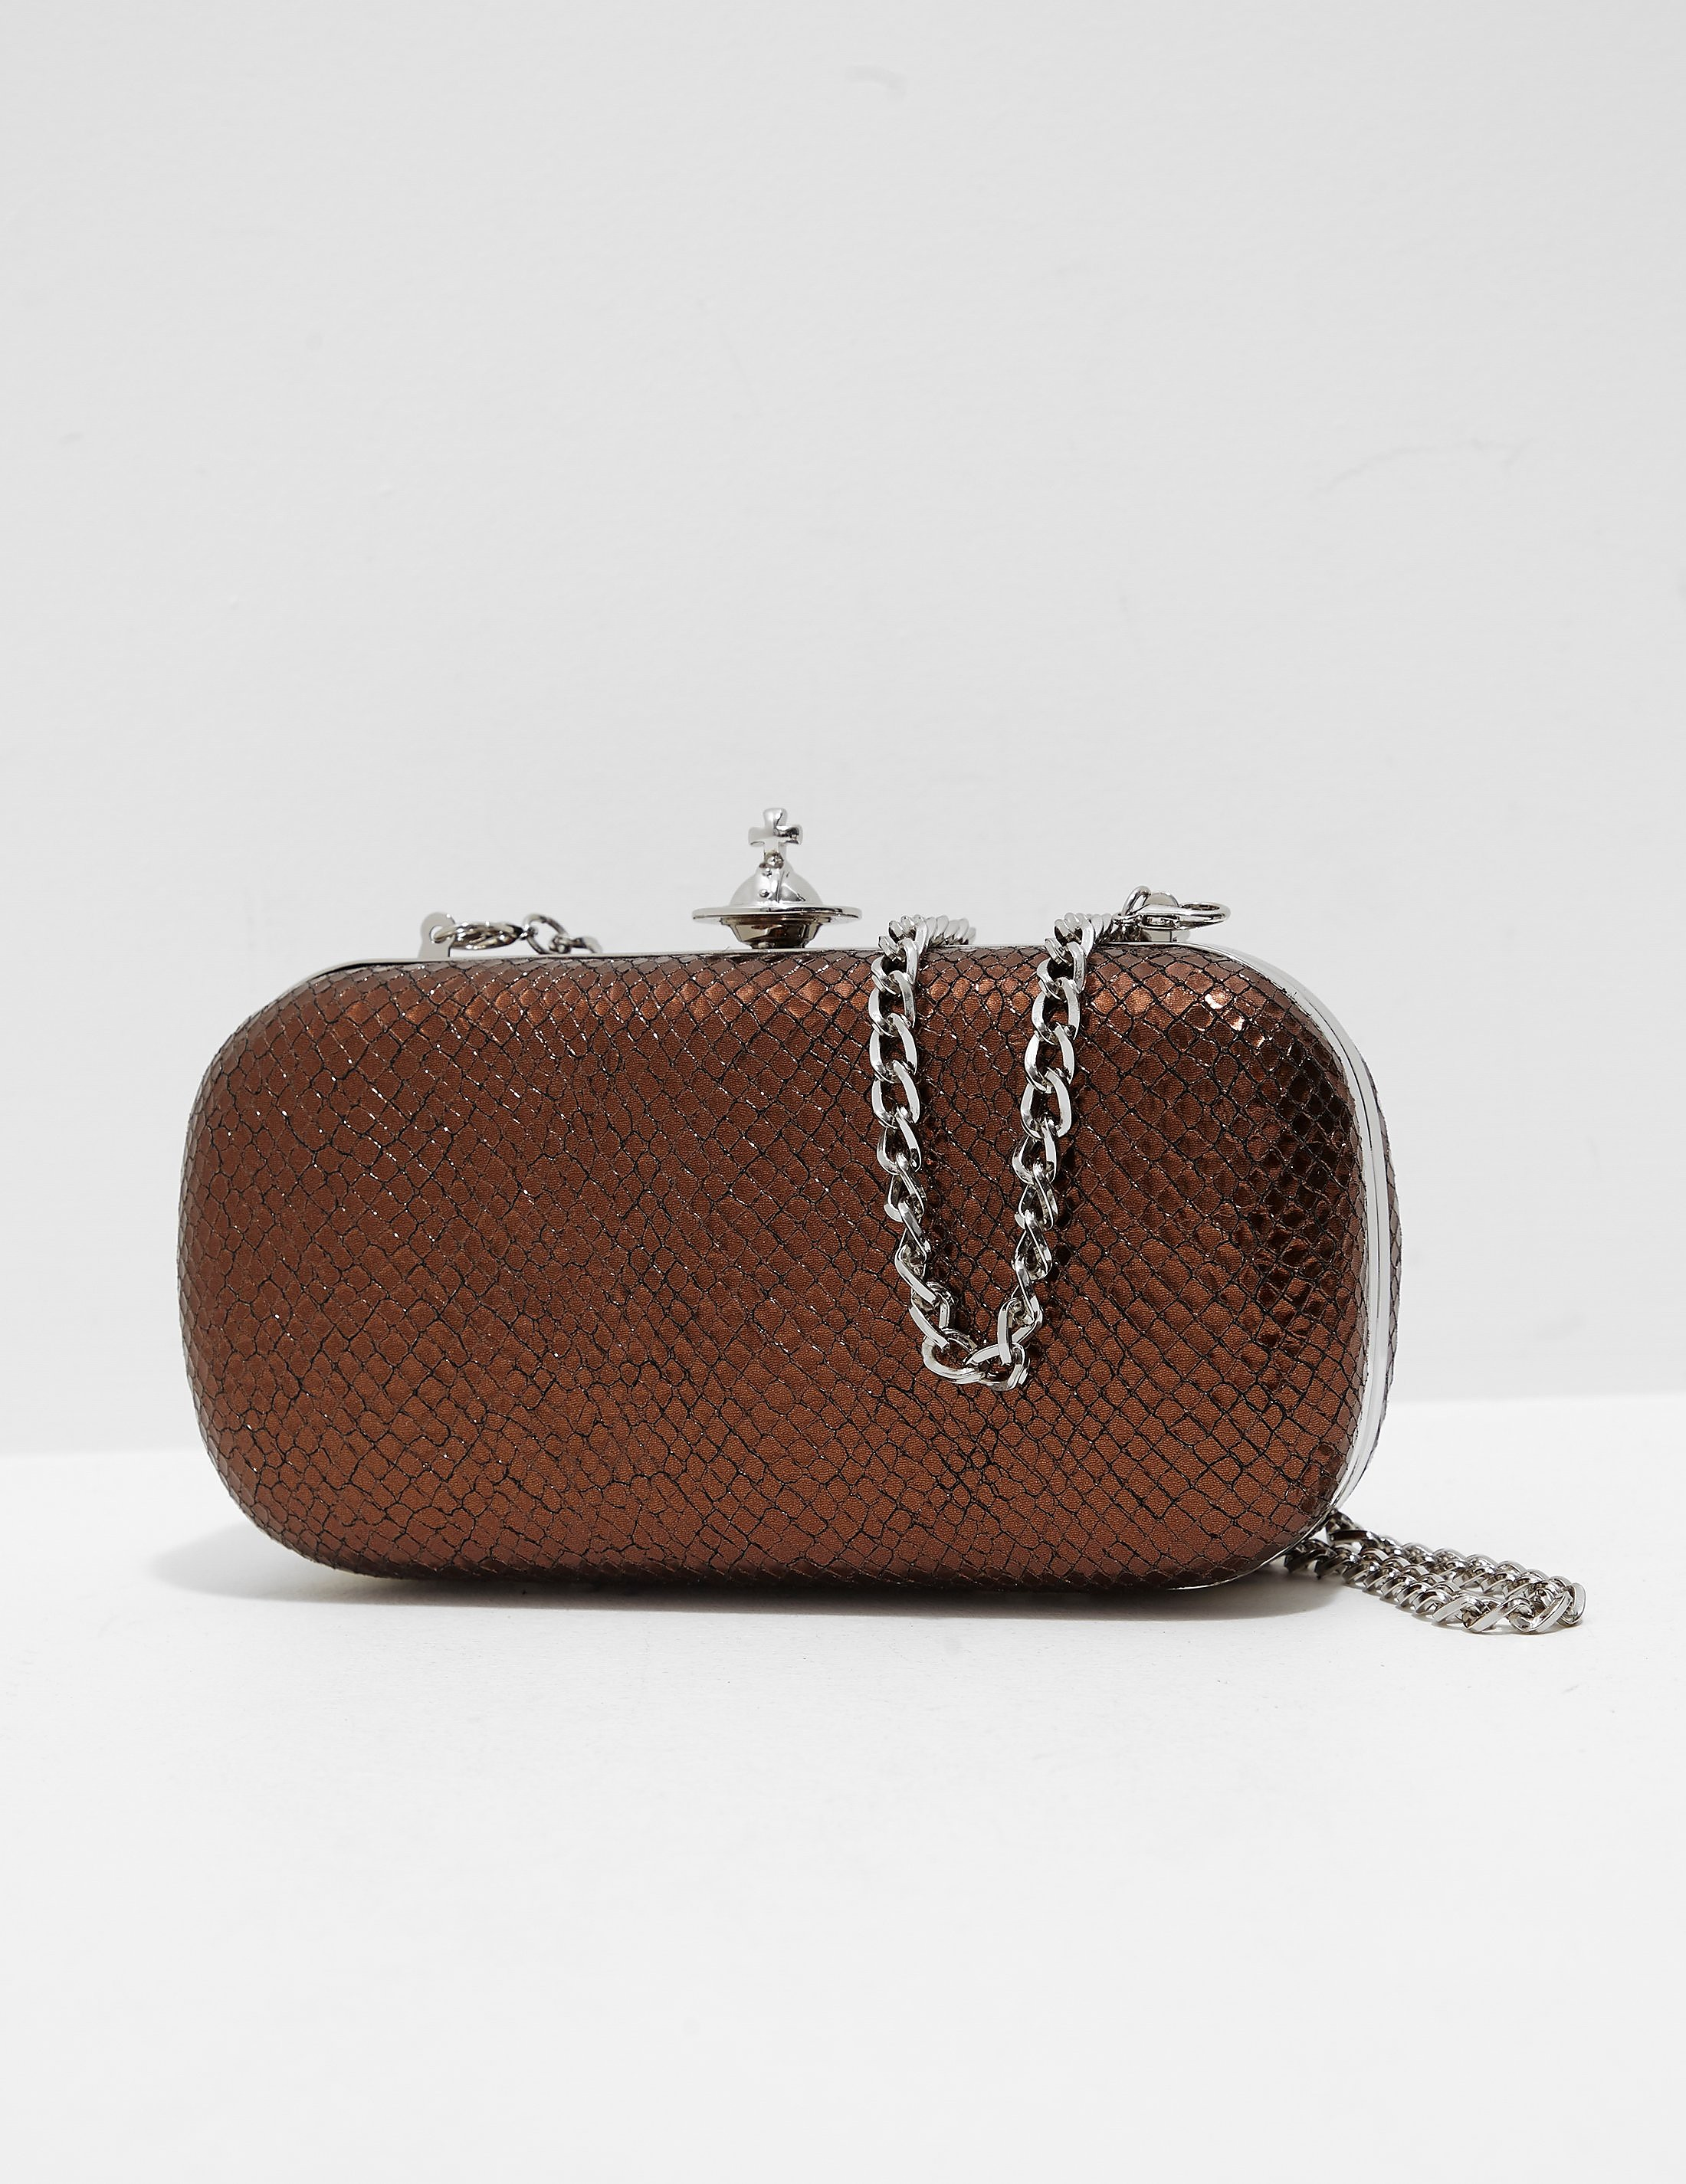 Vivienne Westwood Verona Clutch Bag - Online Exclusive